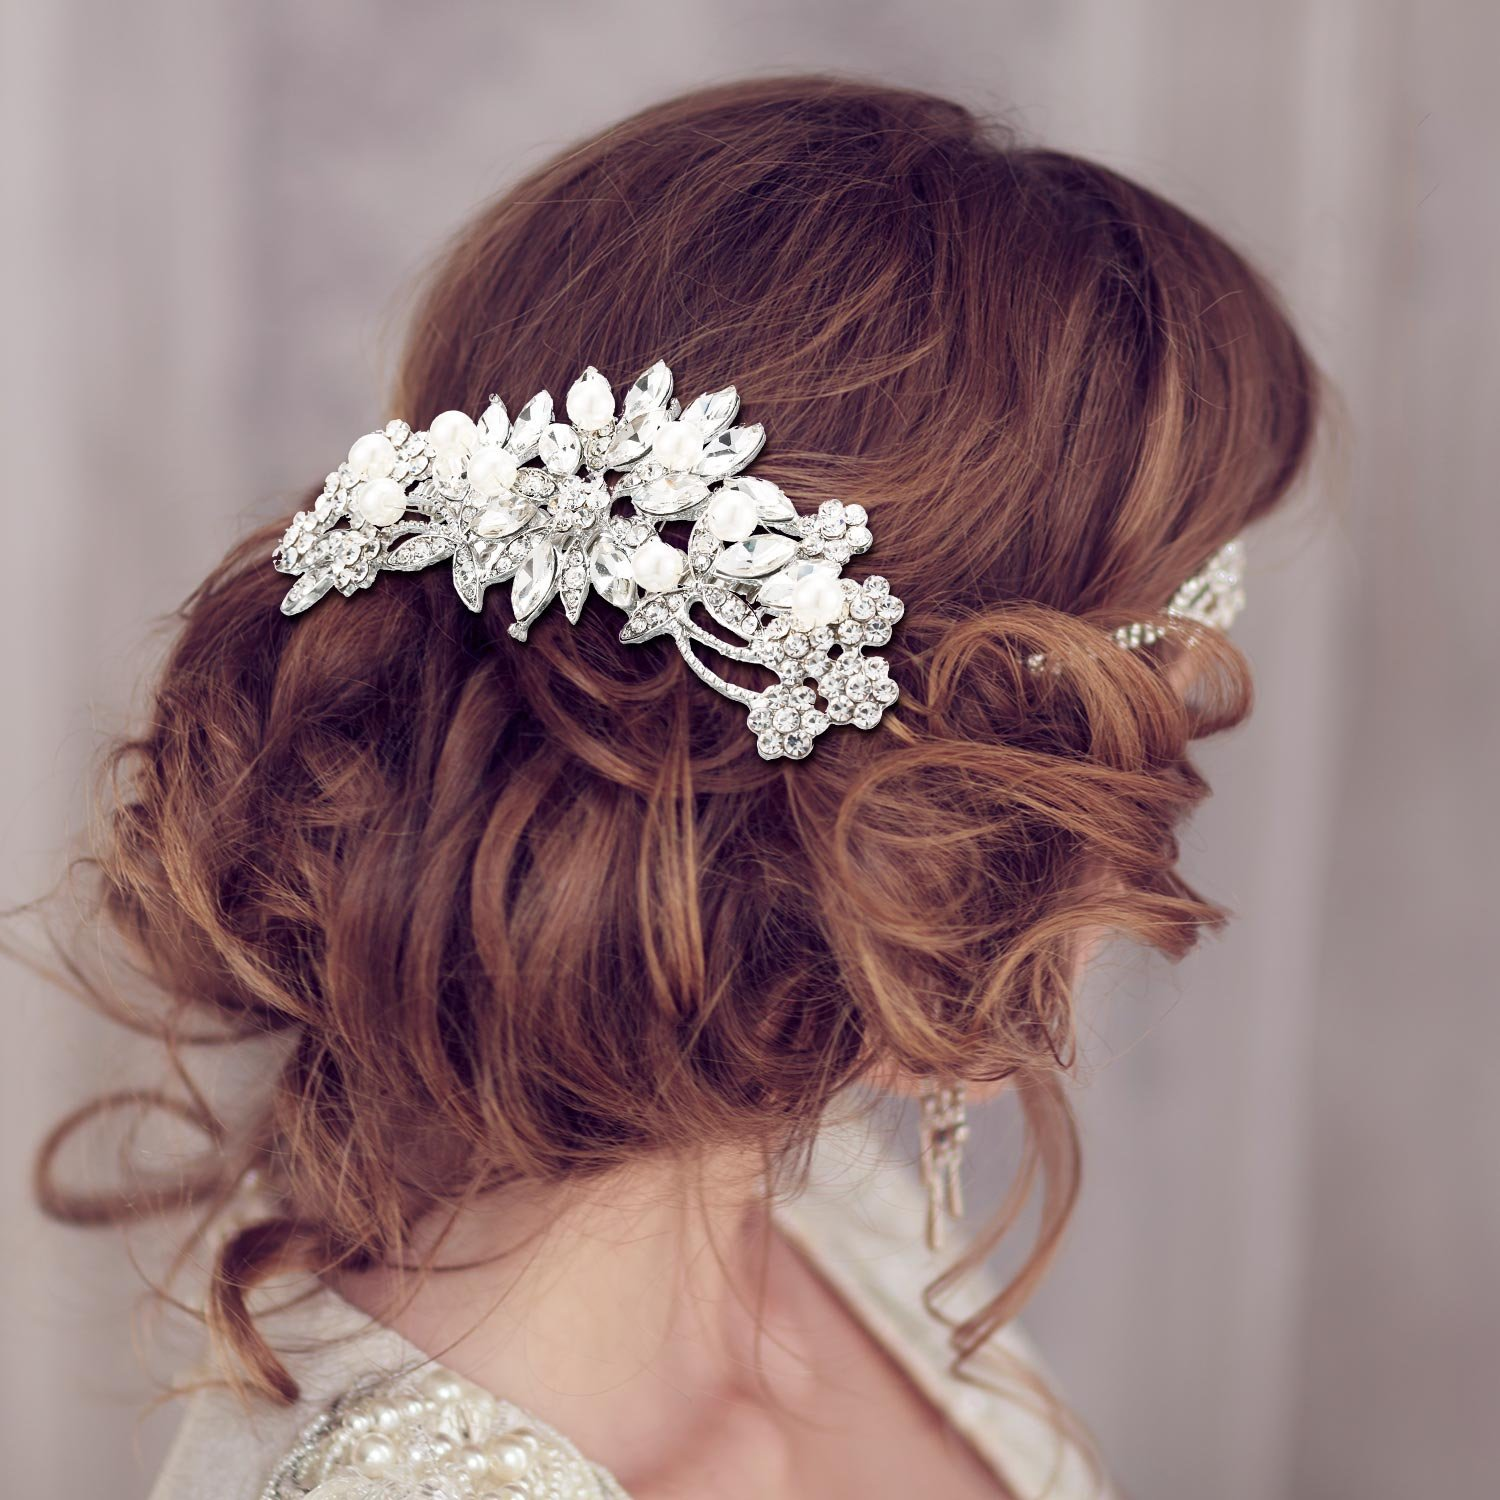 Gejoy 3 Pieces Elegant Wedding Crystal Hair Accessories, Leaves Flowers Hair Comb and 2 Pieces Rhinestone Bridal Hair Pins for Women, Bride or Bridesmaid by Gejoy (Image #4)